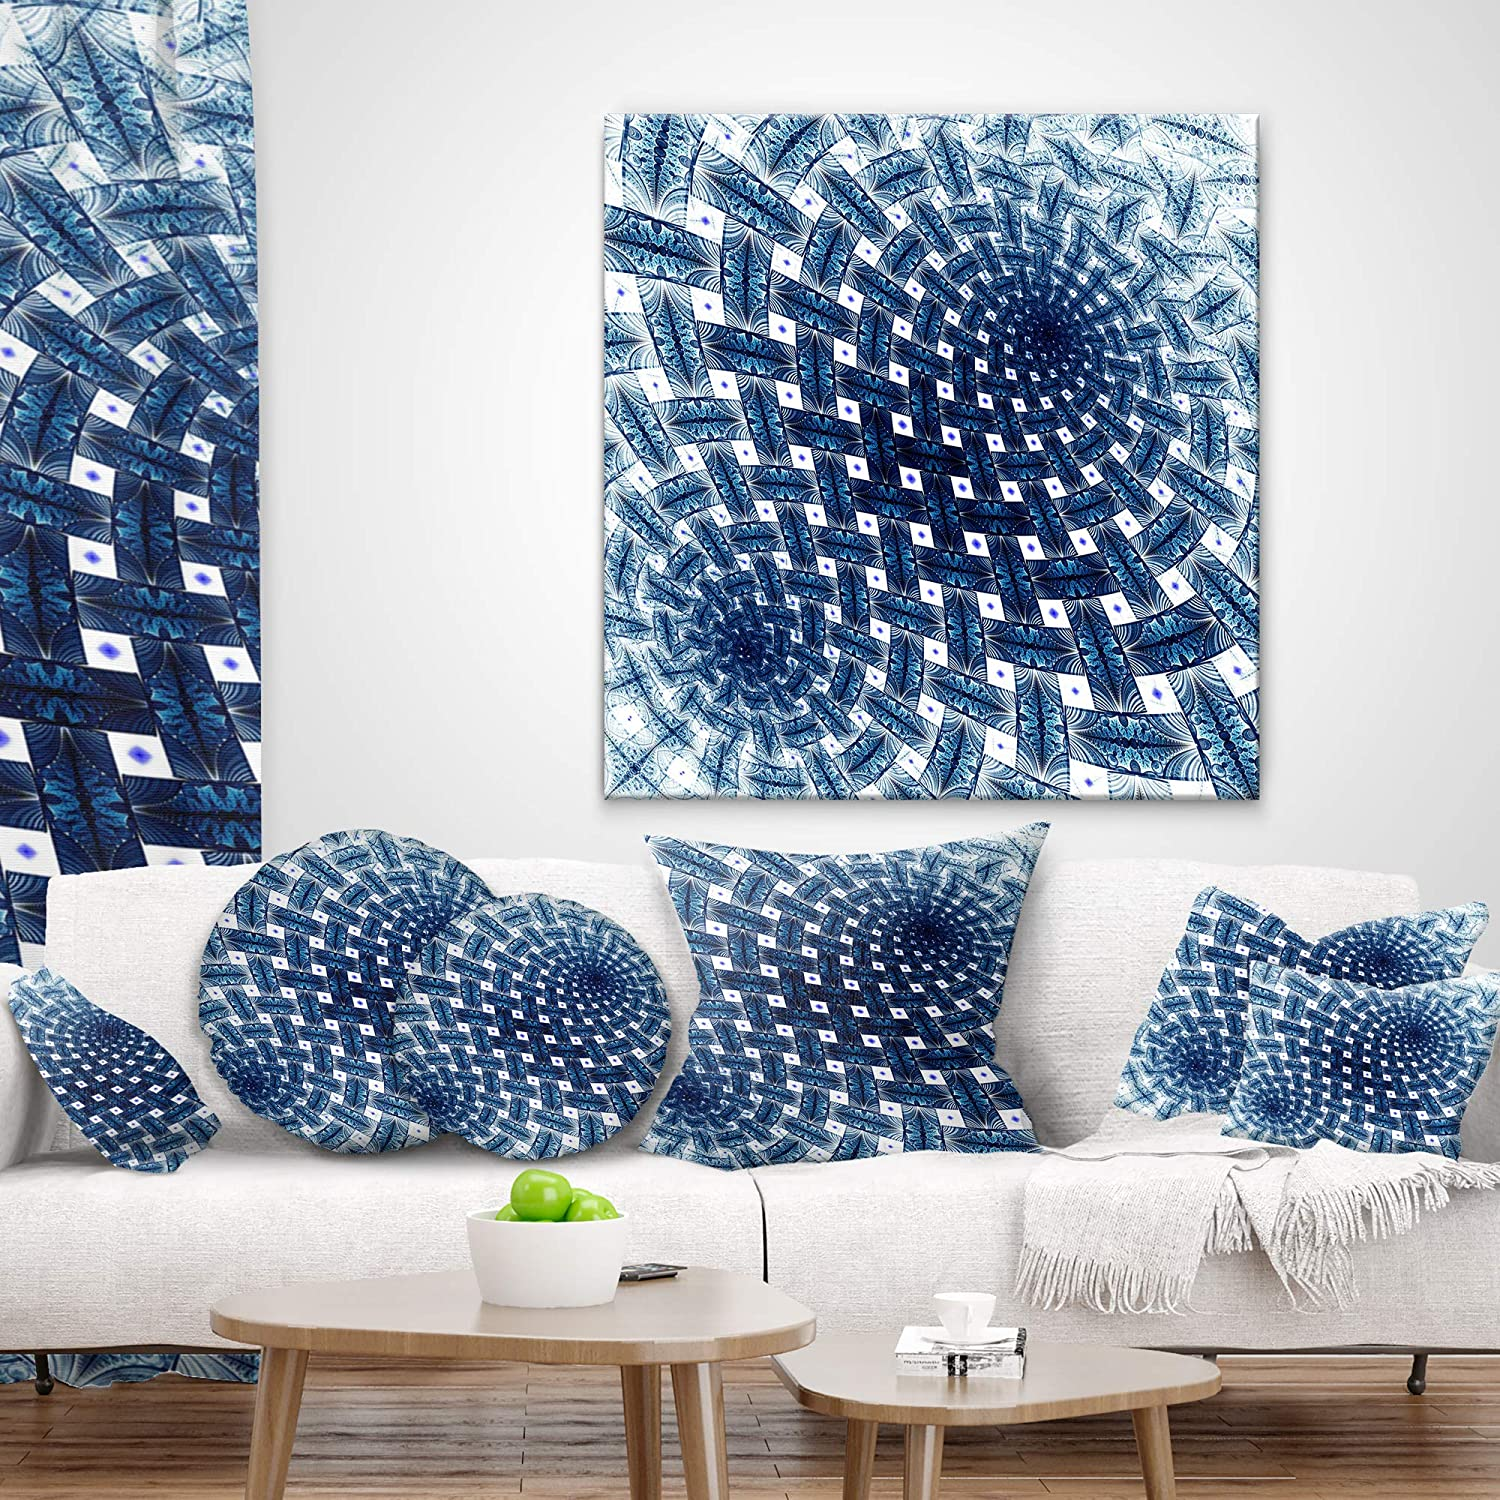 Throw Pillow X 20 In Sofa Designart Cu12036 12 20 3d Shaped Blue Large Fractal Flower Floral Lumbar Cushion Cover For Living Room 12 In Insert Printed On Both Side Home Kitchen Throw